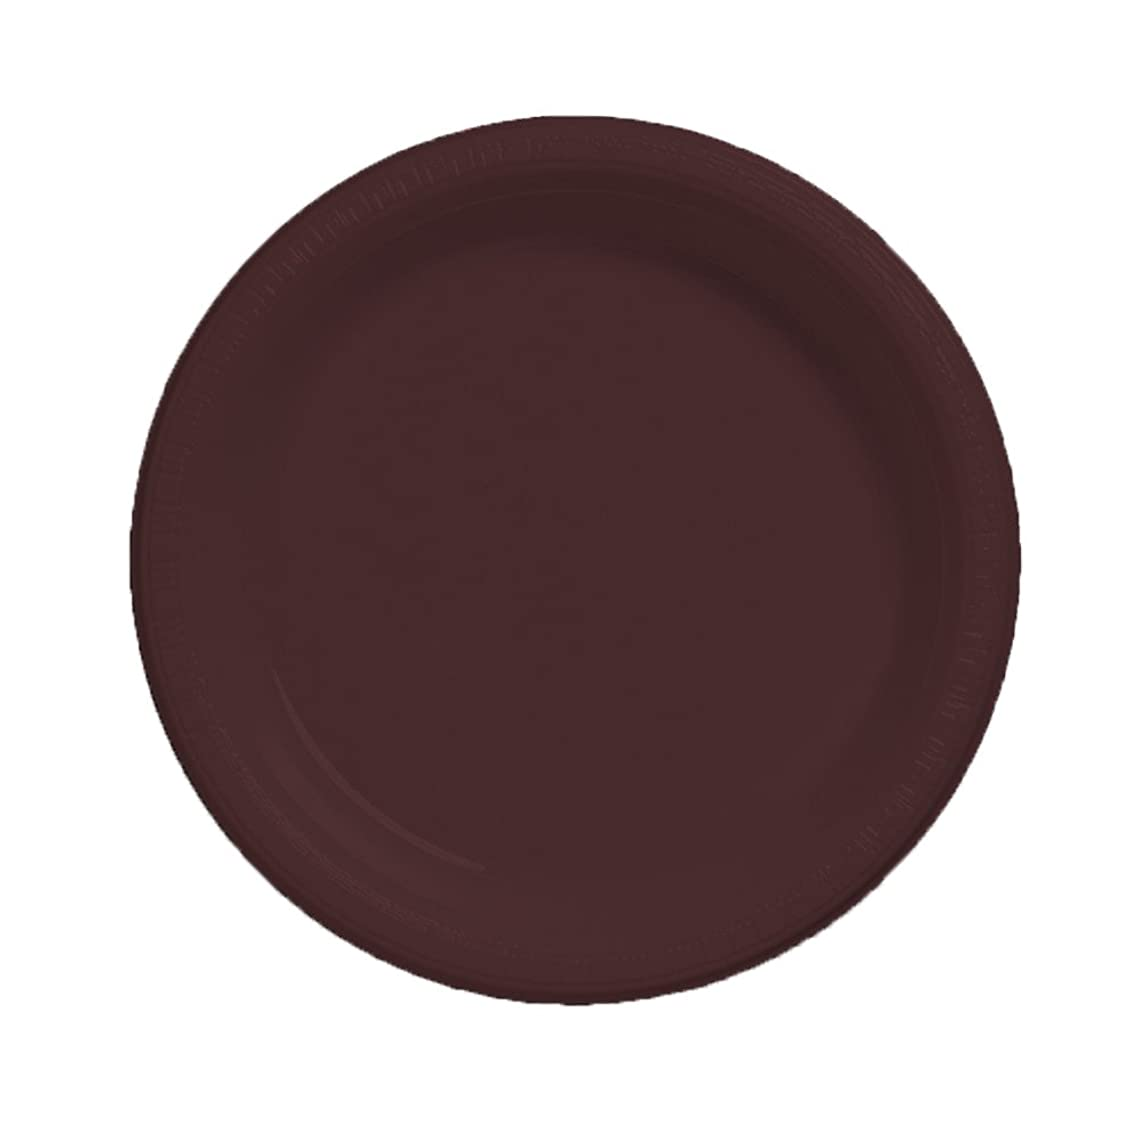 Creative Converting Touch of Color 20 Count Plastic Banquet Plates, Chocolate Brown